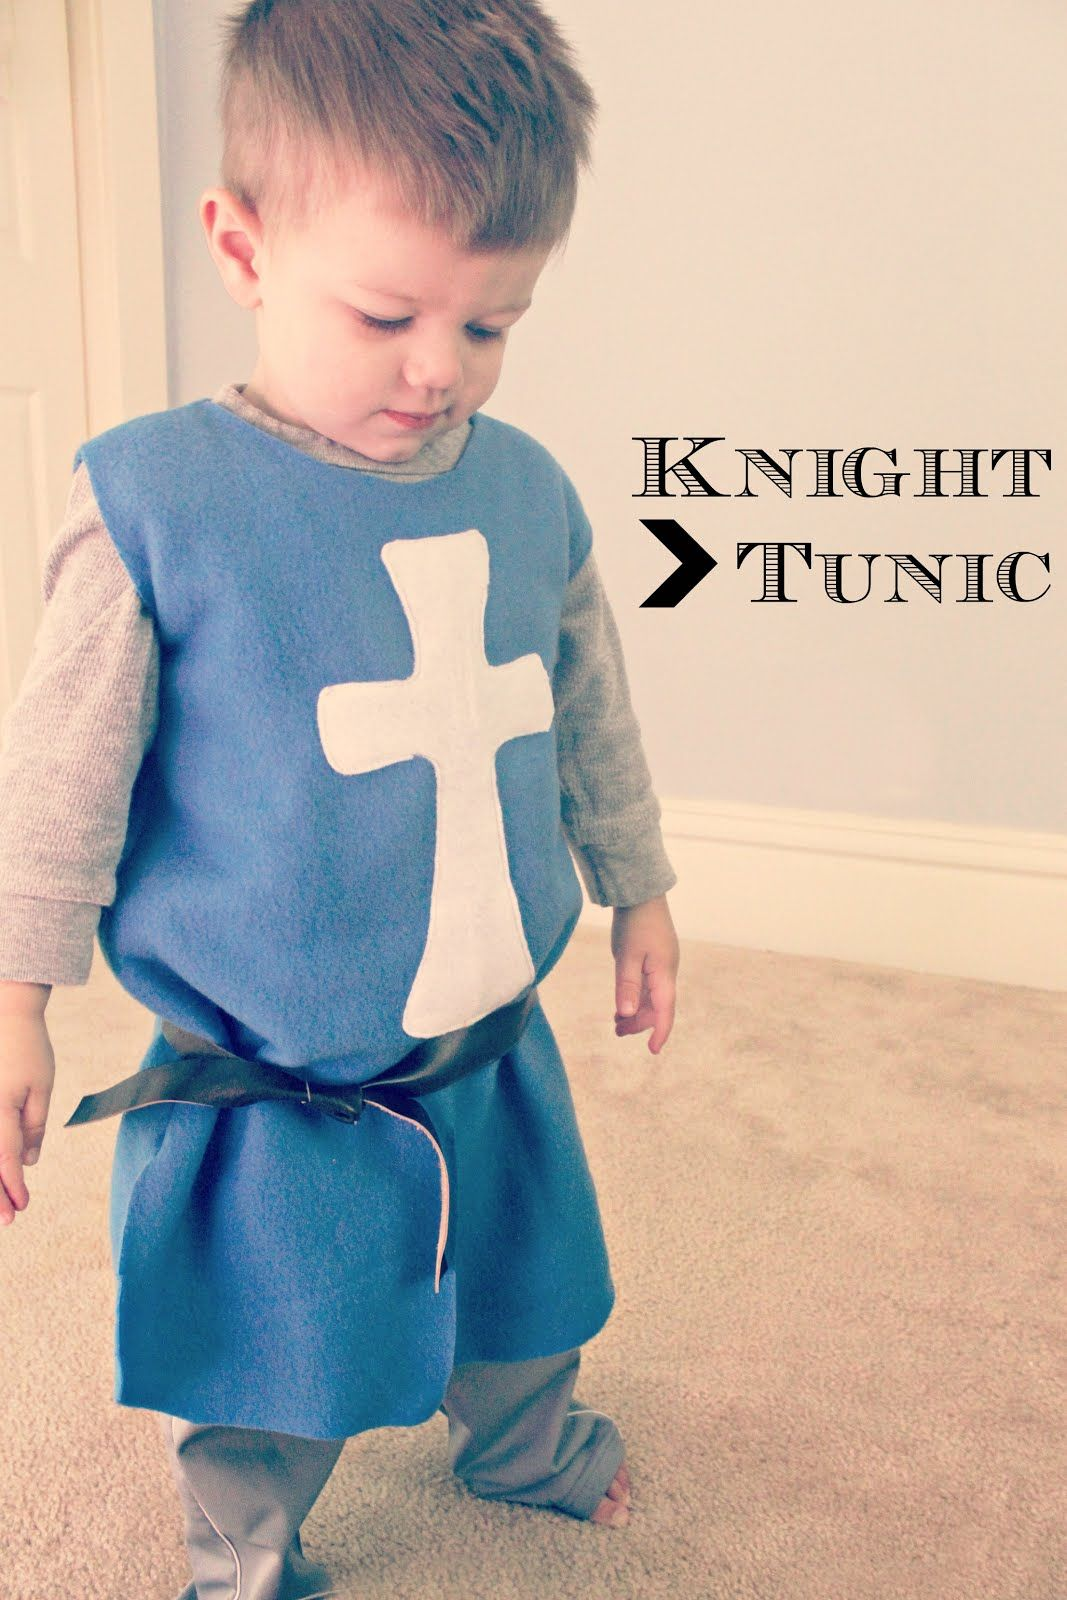 How to Make a Knight\'s Tunic for the knight party | Sew Creative ...